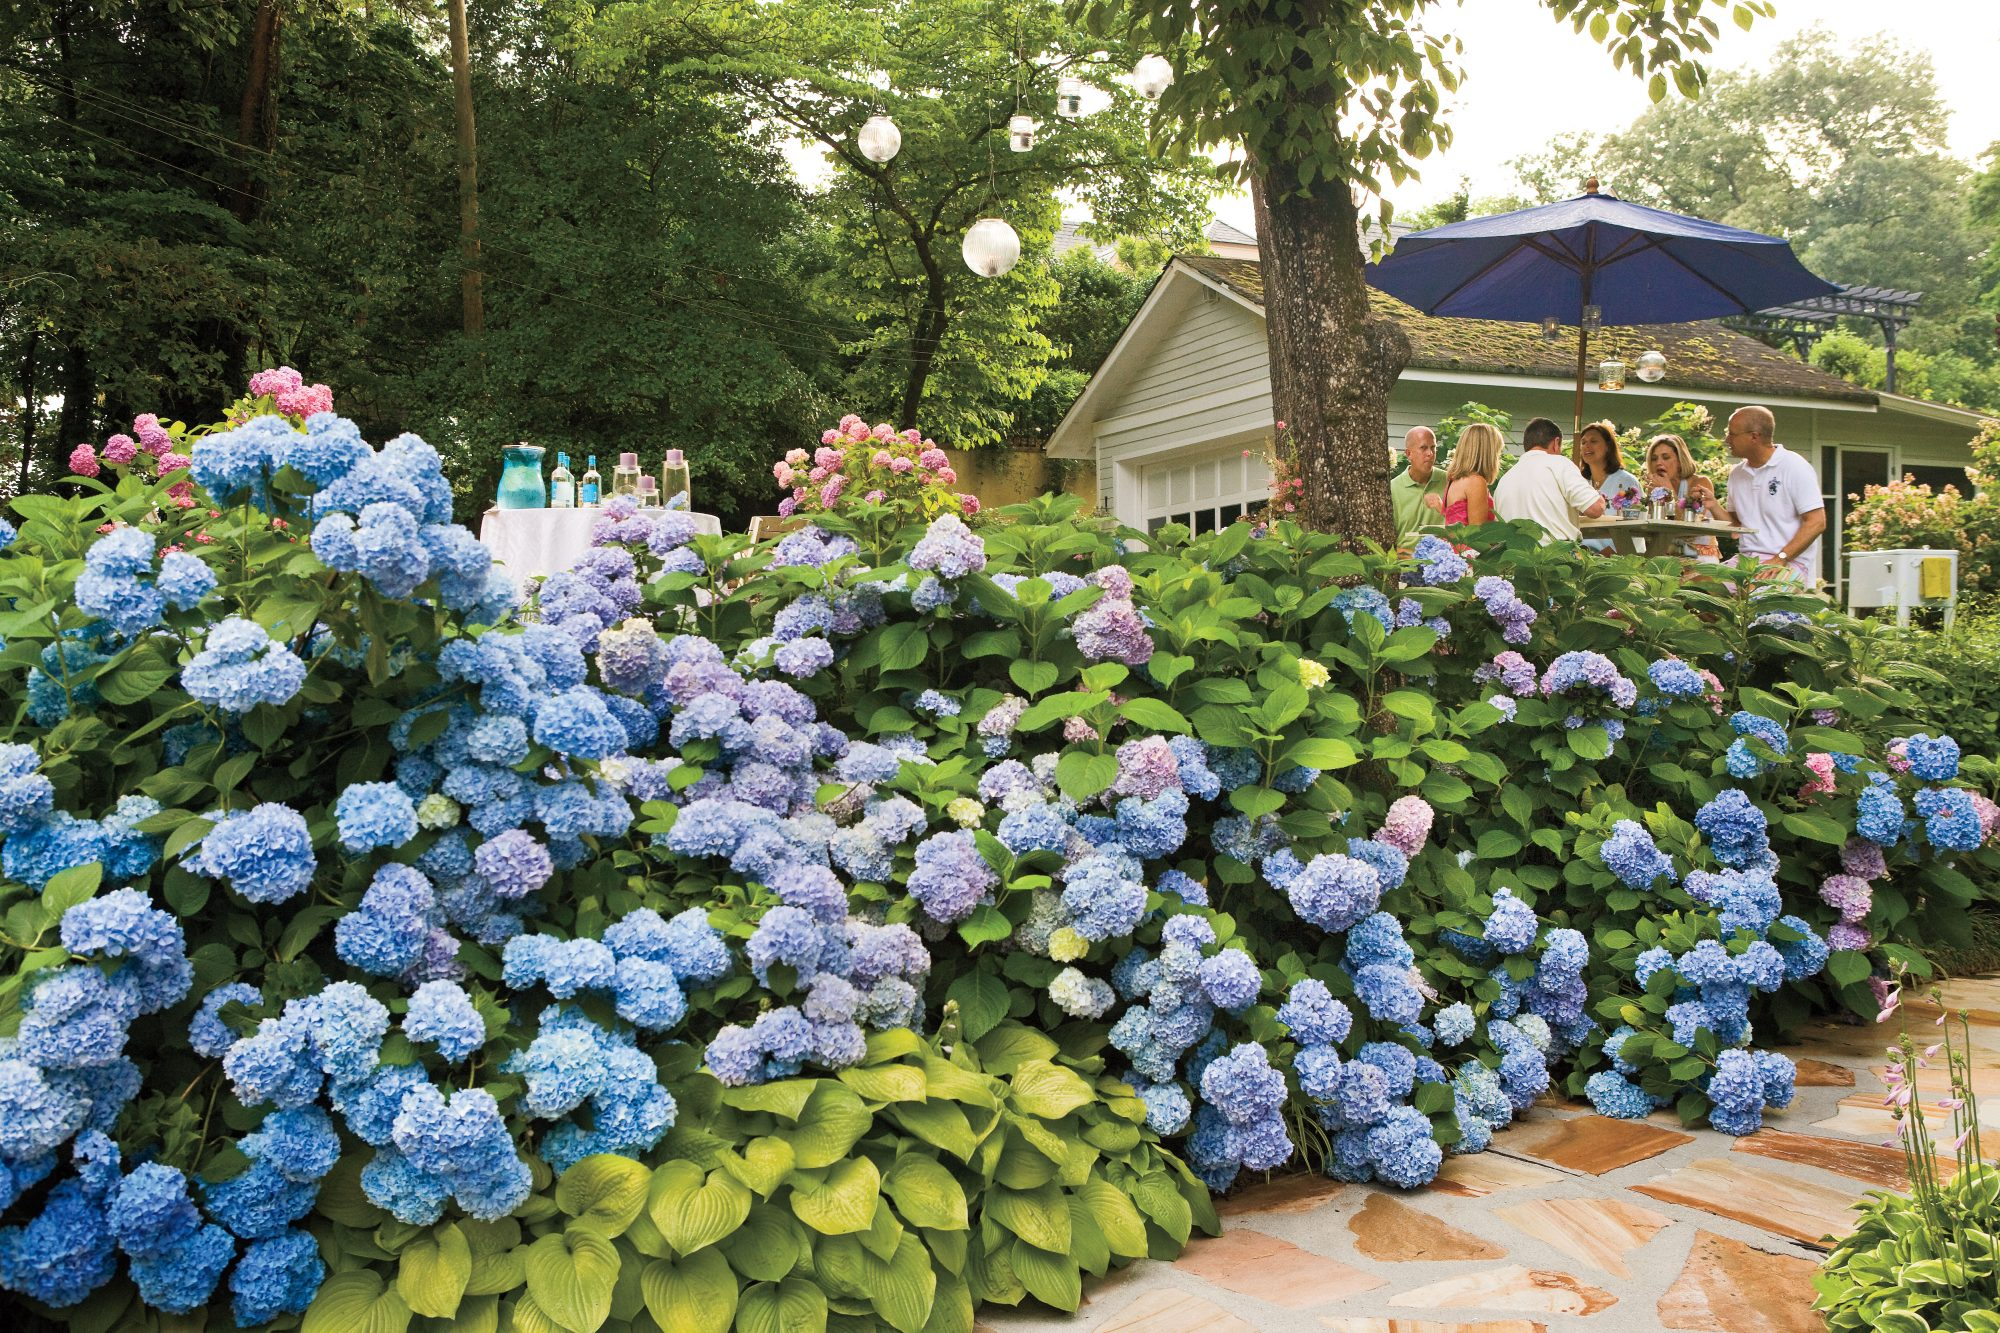 1. How many kinds of hydrangeas are there?